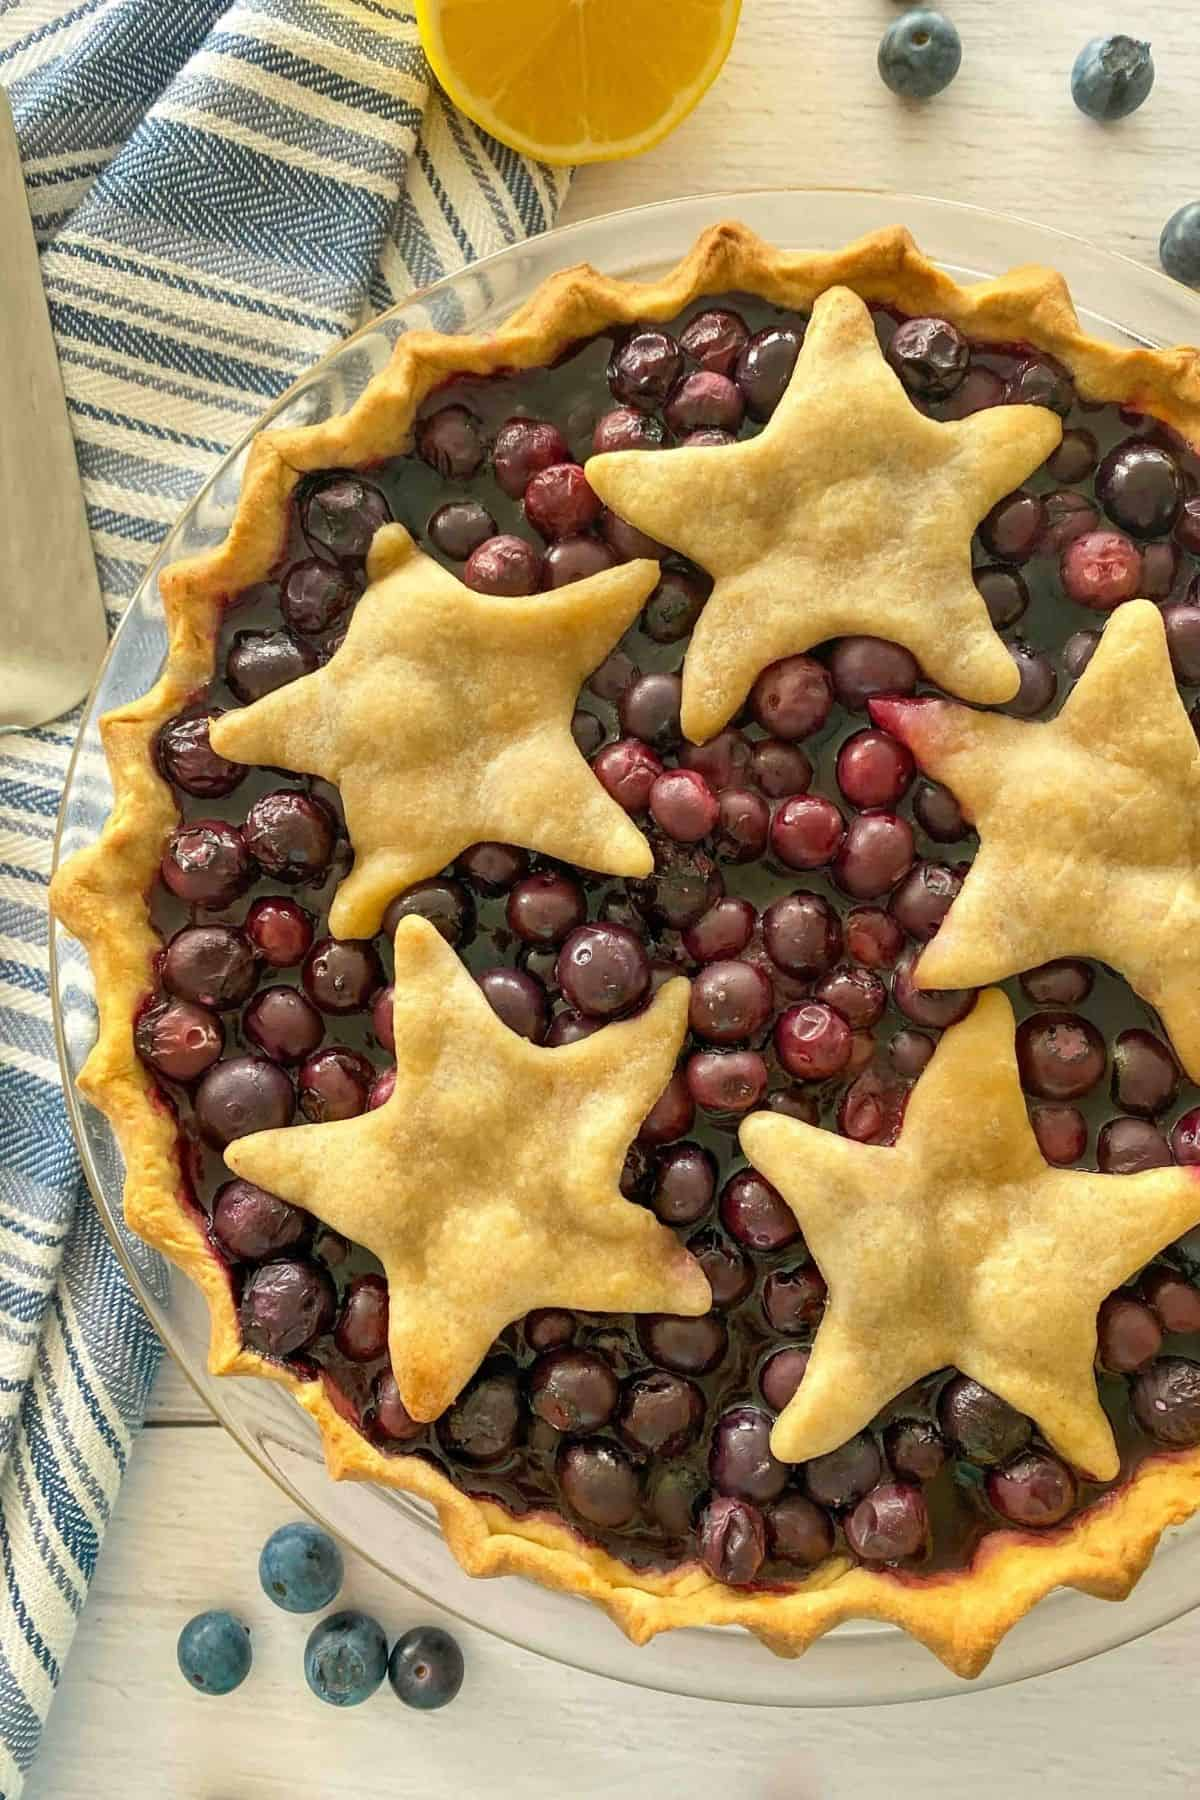 Blueberry pie in pie plate with star shaped pie crust cut outs on top.